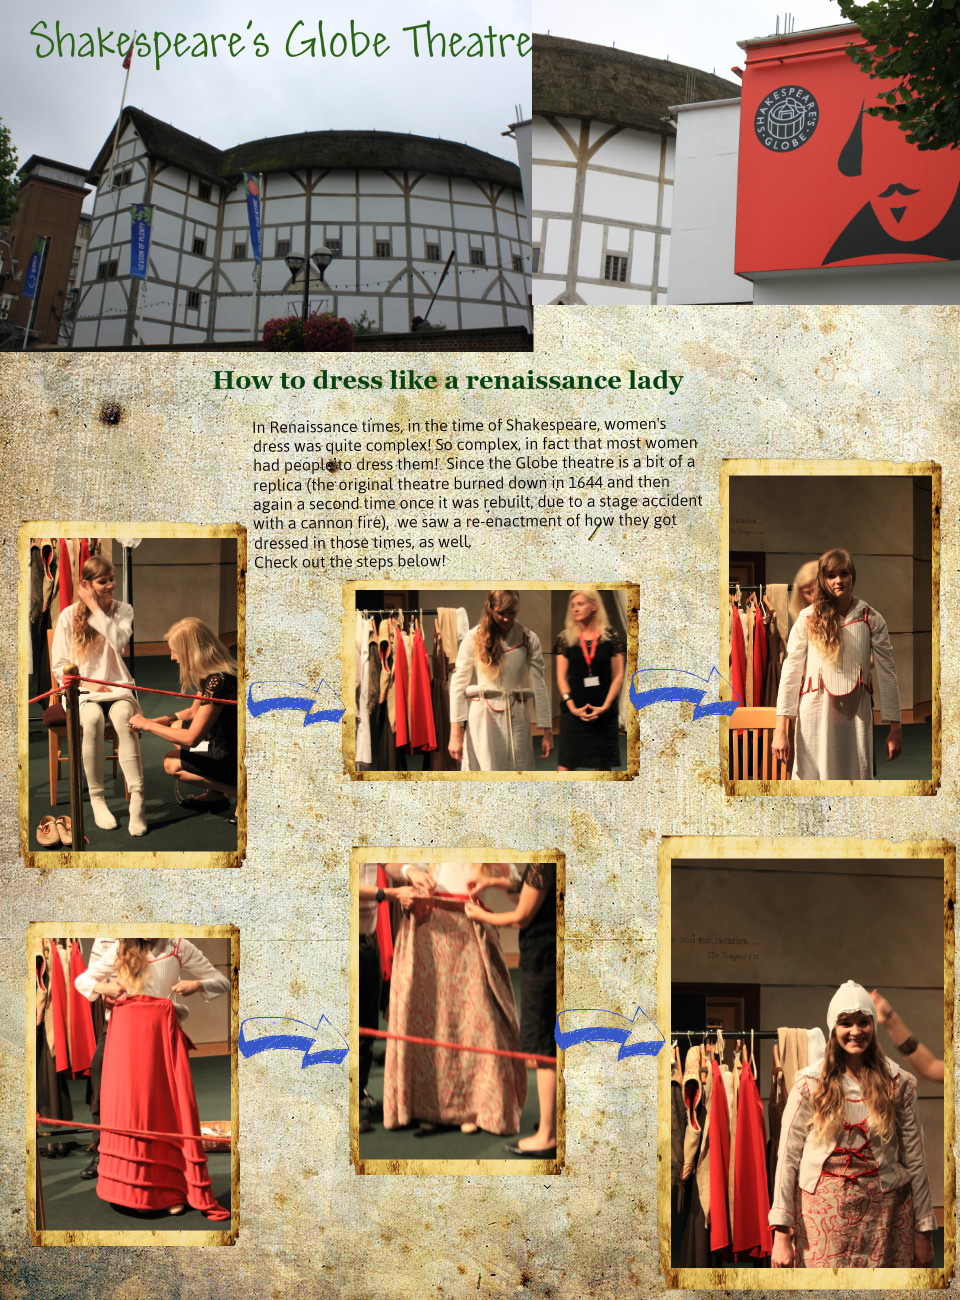 Shakespeare's Globe Theatre: How To Dress Like a Renaissance Lady